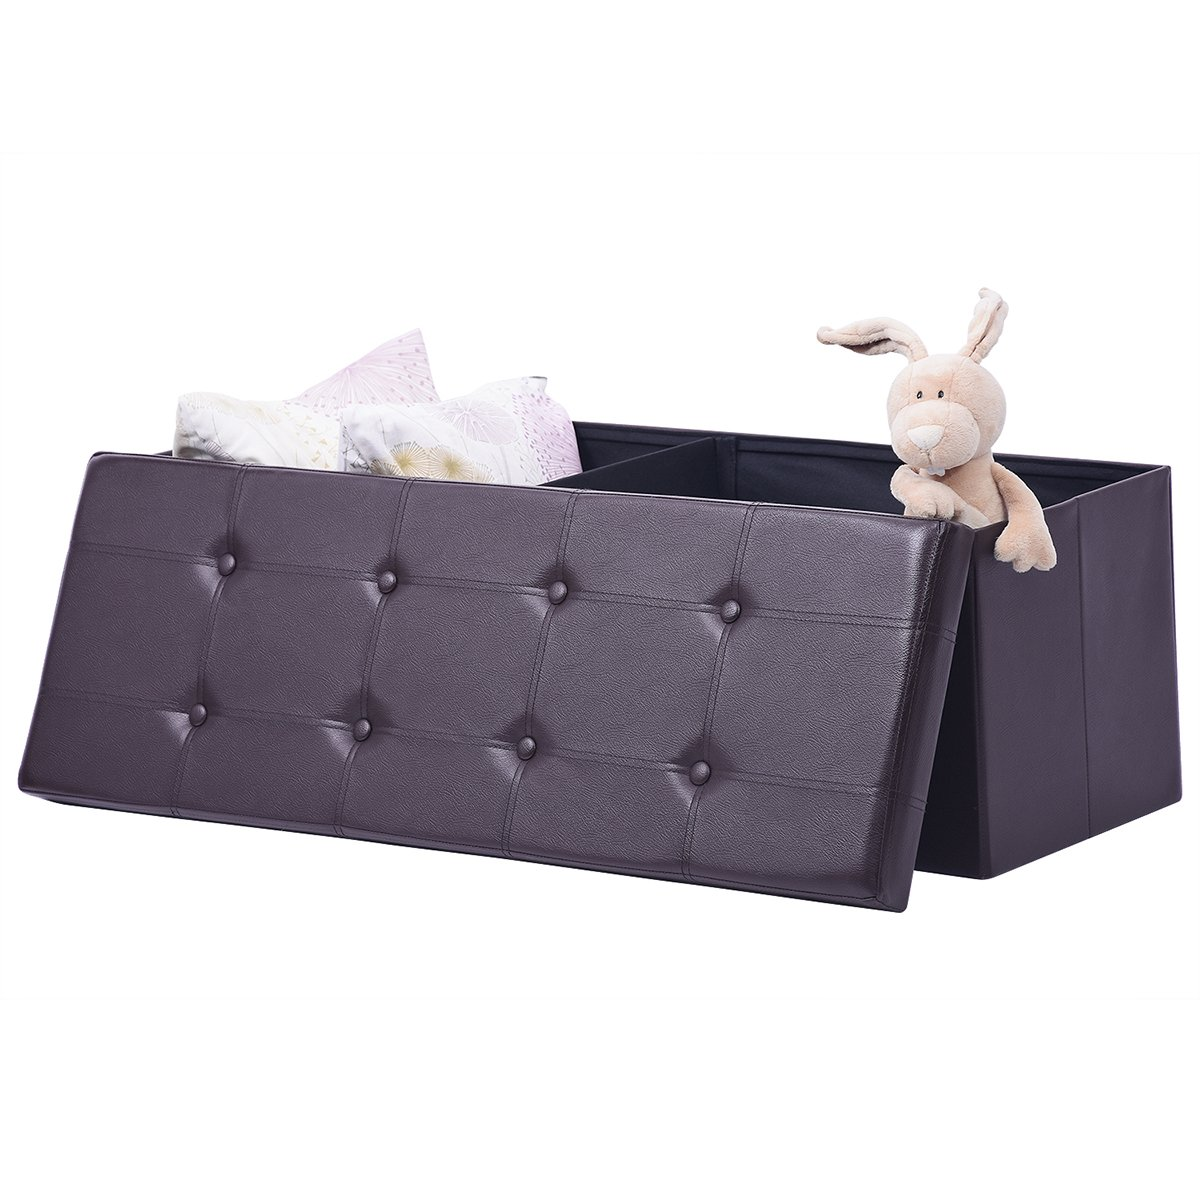 Excellent Details About Ulikit Xl Faux Leather Folding Storage Ottoman Bench Storage Chest Footrest Cjindustries Chair Design For Home Cjindustriesco